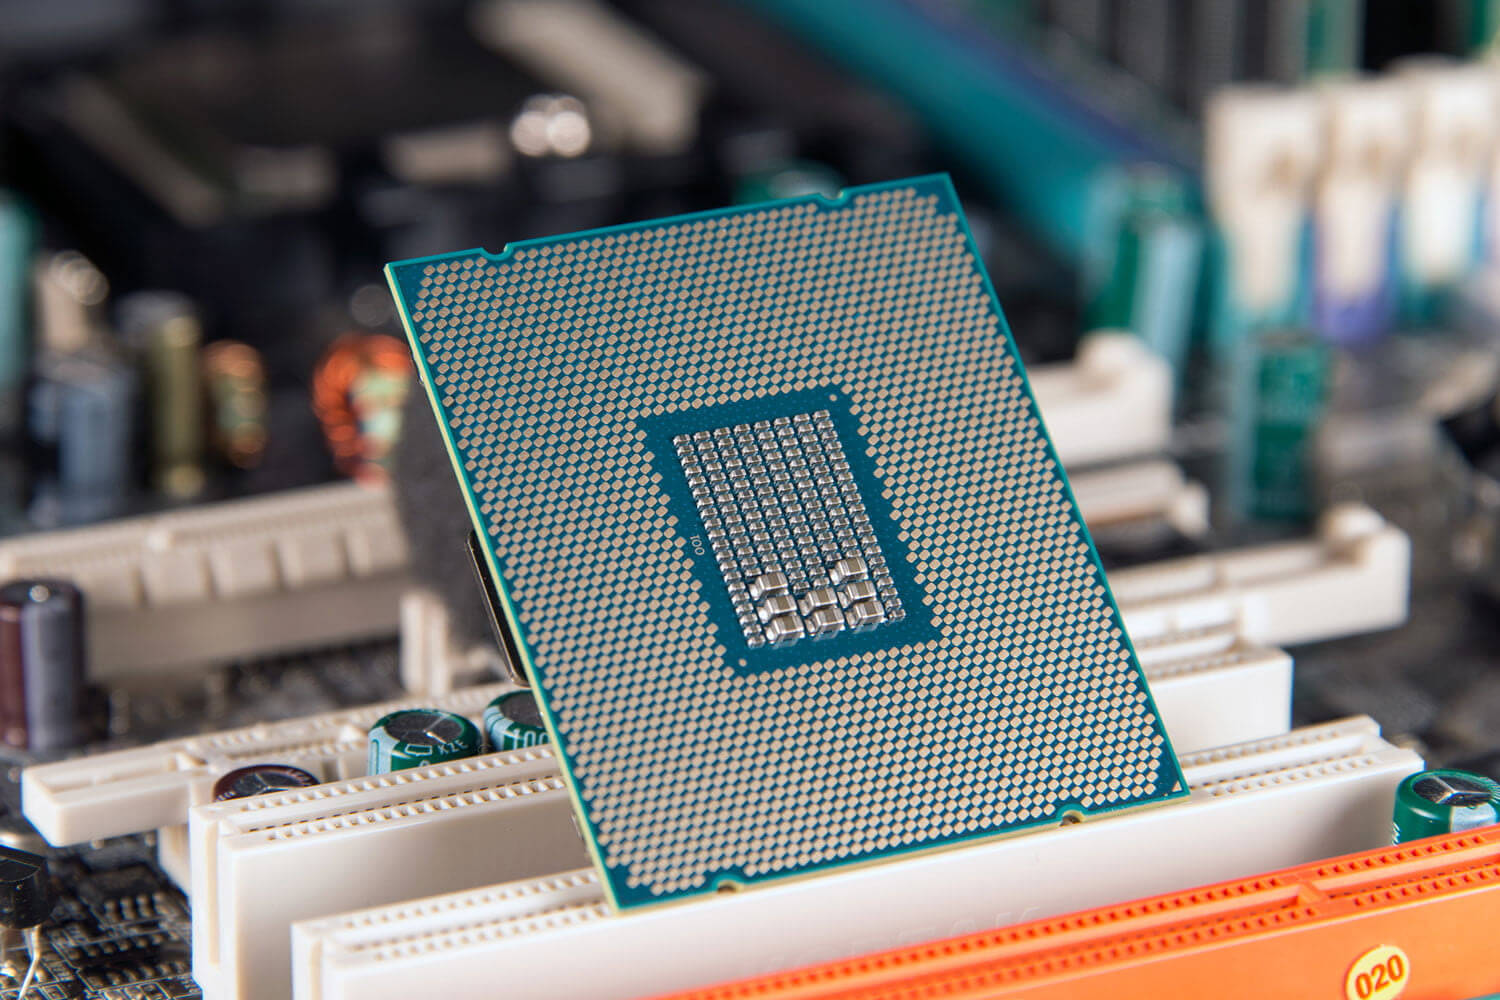 Intel's 8-core 9th generation processor rumored to arrive next month